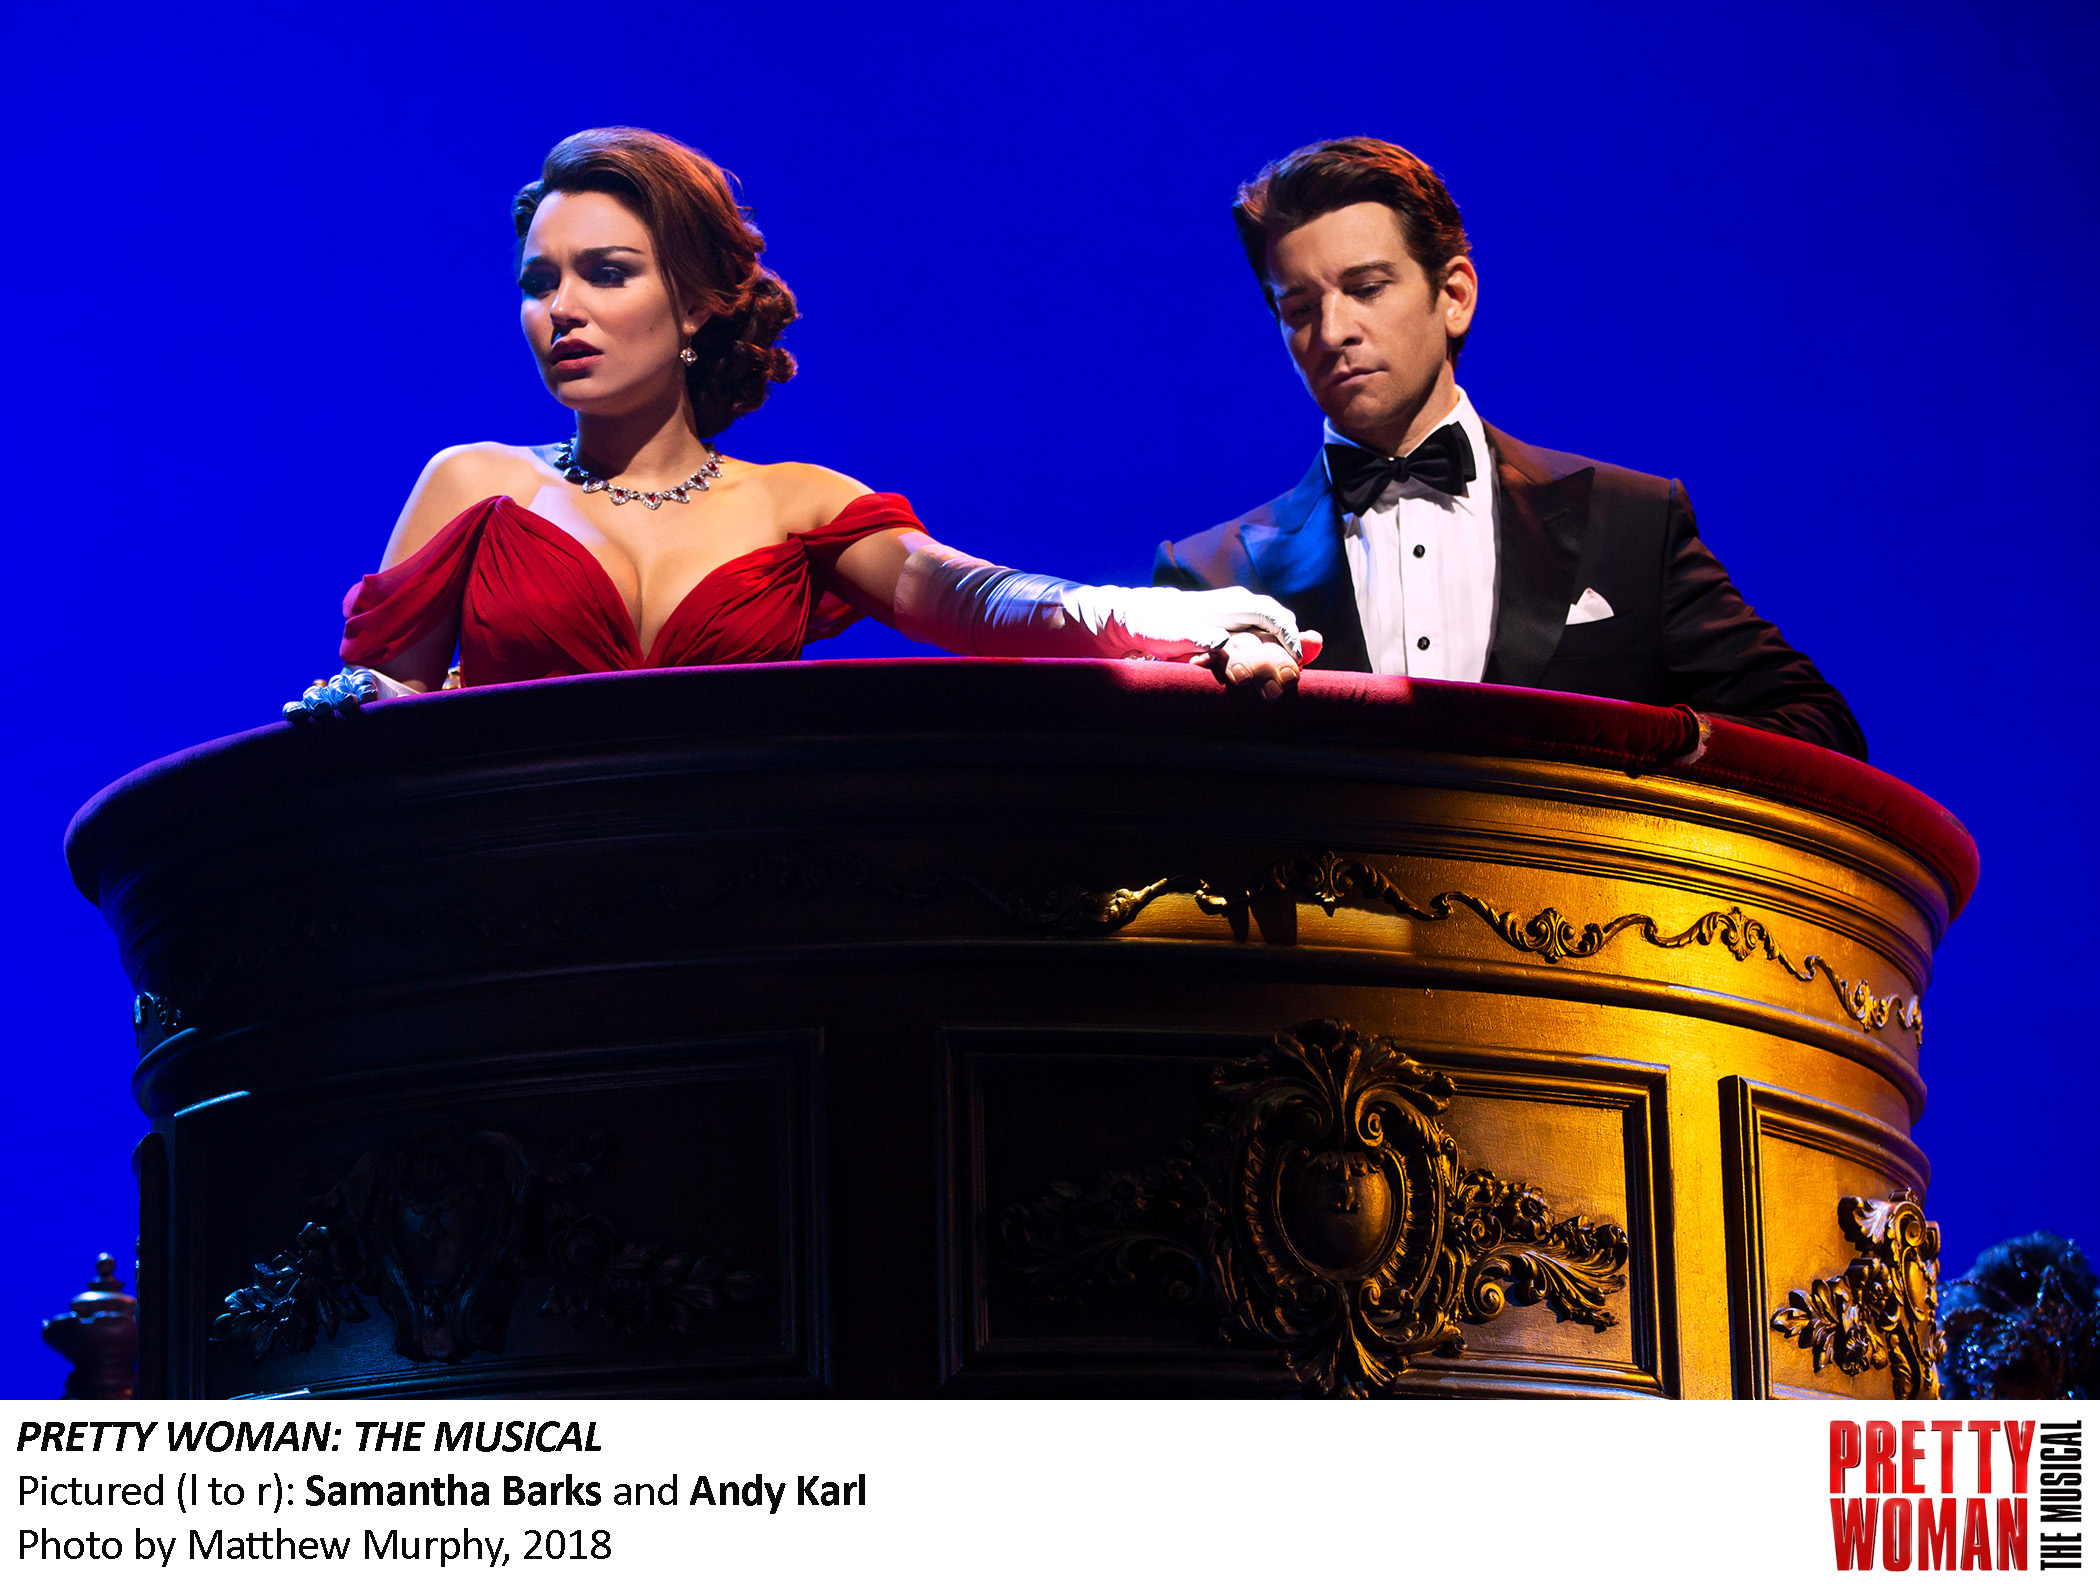 Samantha Barks and Andy Karl in PRETTY WOMAN THE MUSICAL, Photo by Matthew Murphy, 2018.jpg